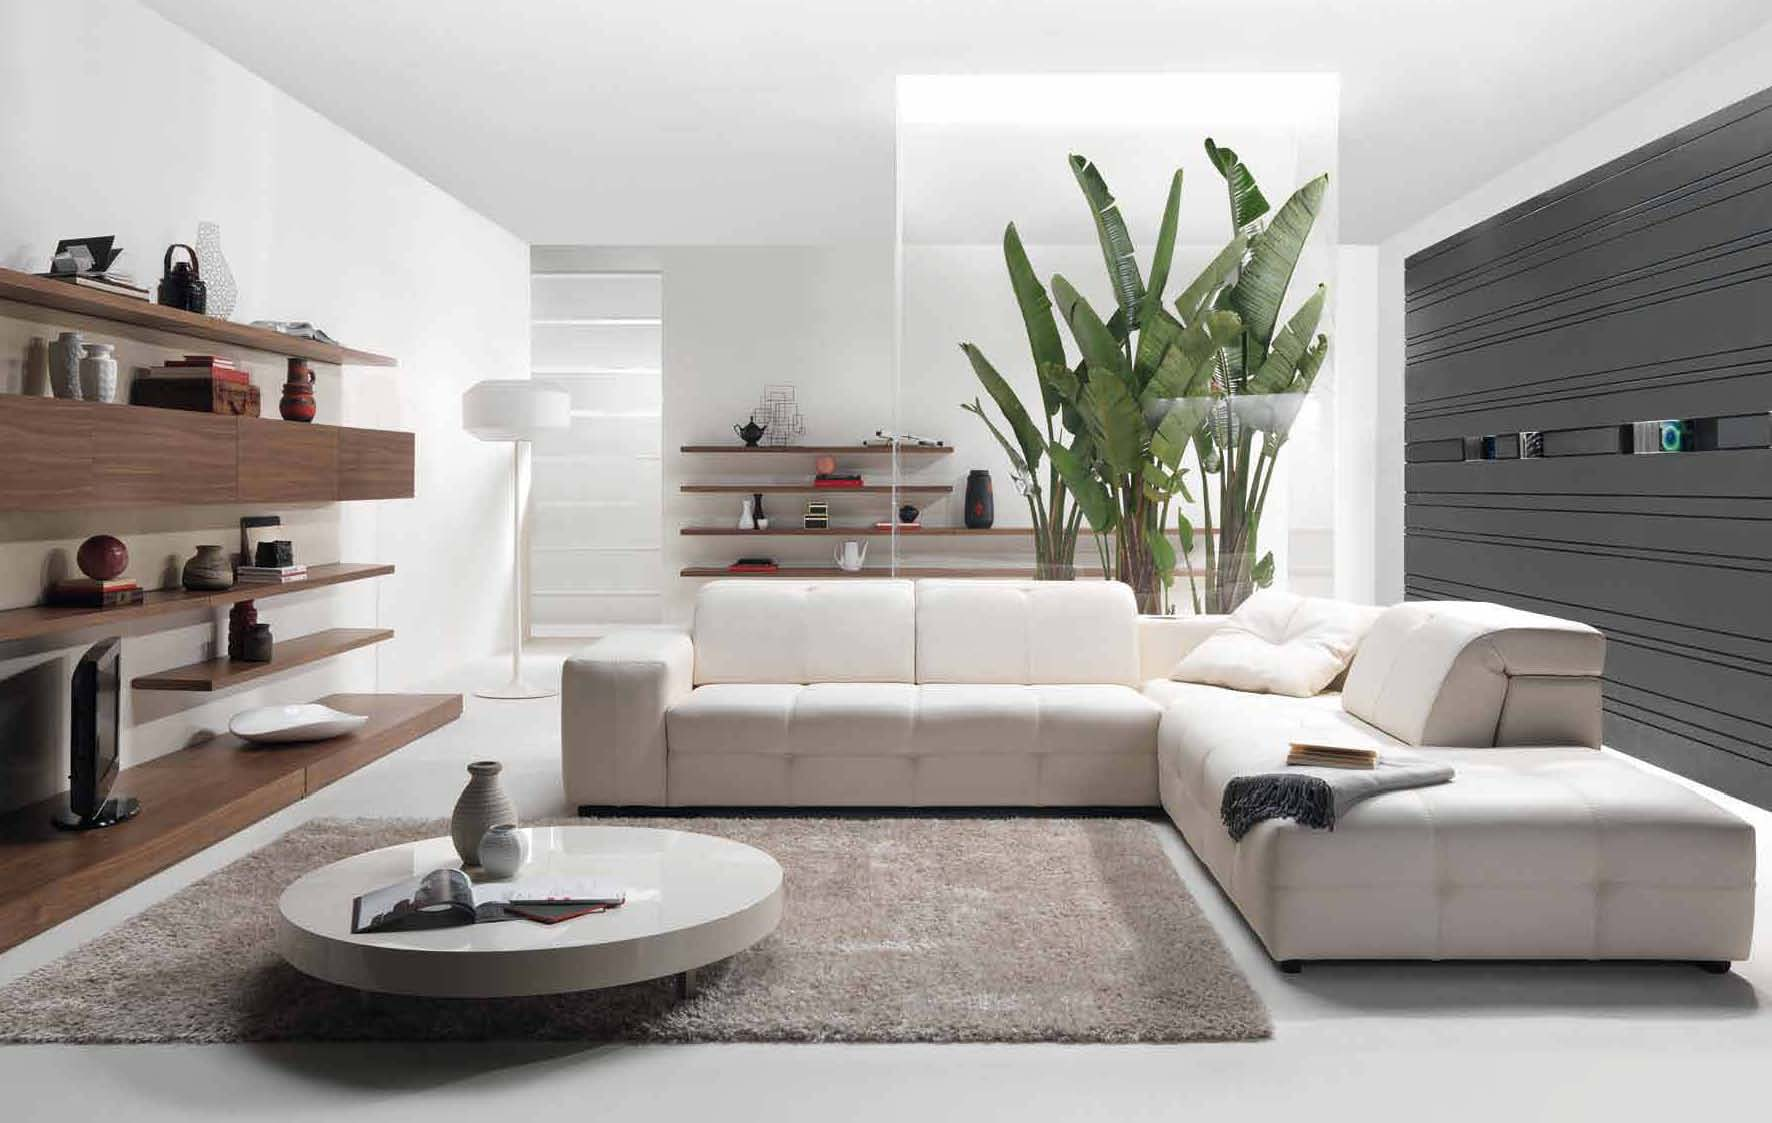 Lovely Modern Interior Decor Part - 7: Modern-minimalist-style-living-room-decorating-with-shaggy-